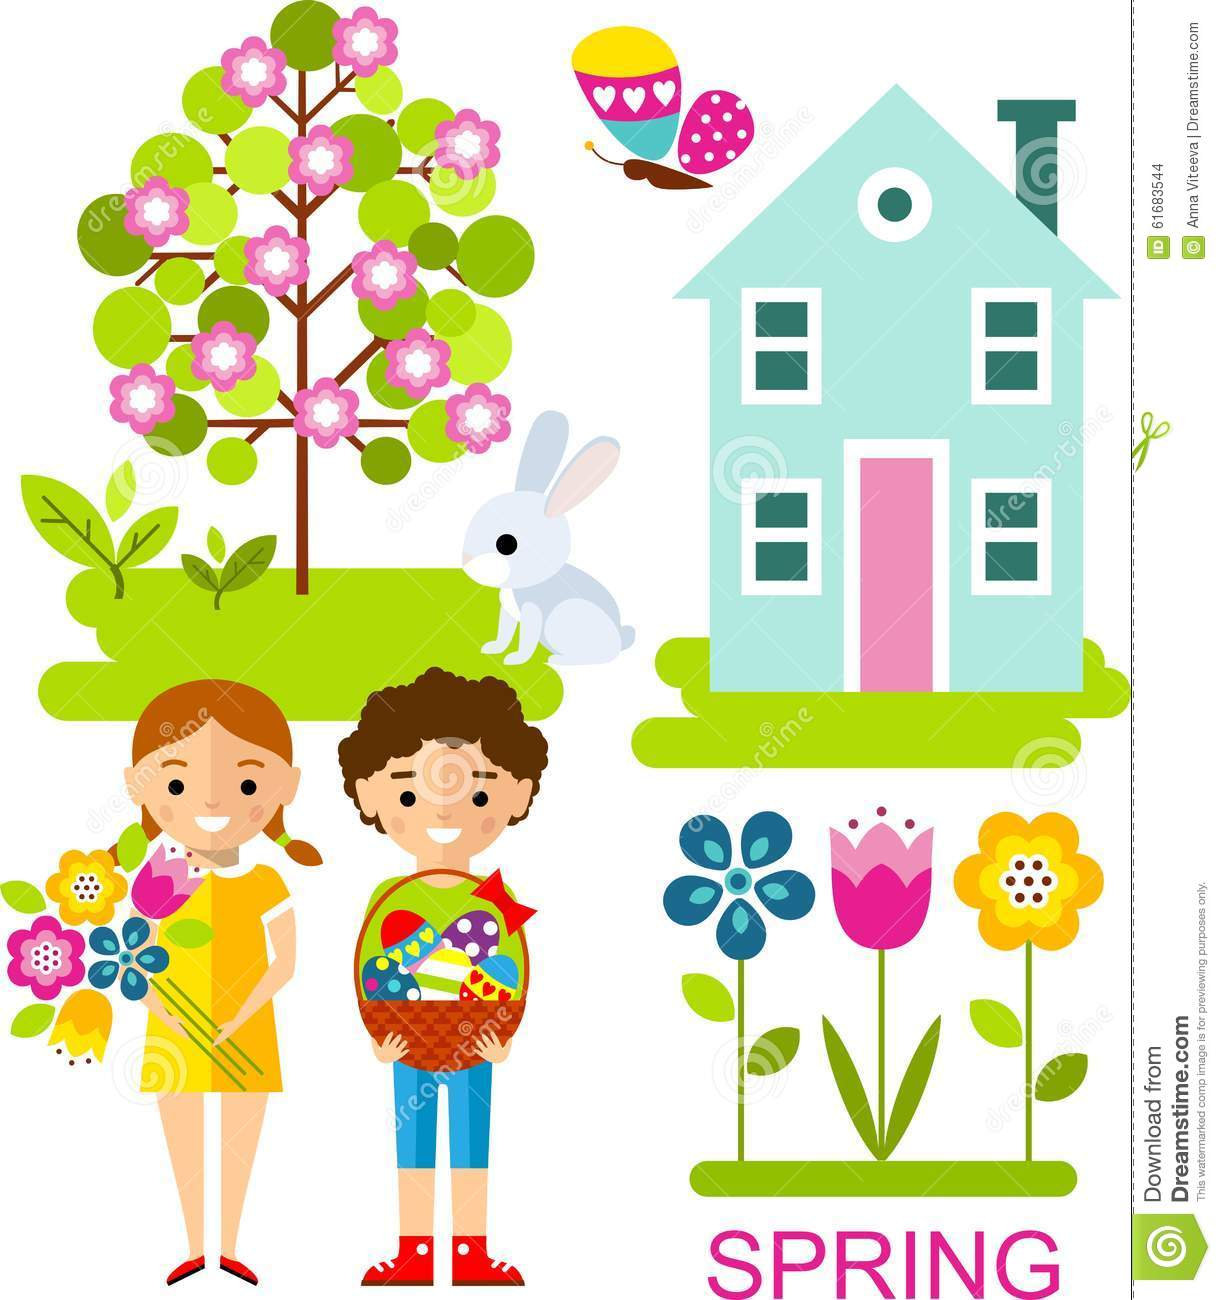 134 Words Short Essay on Spring season for kids